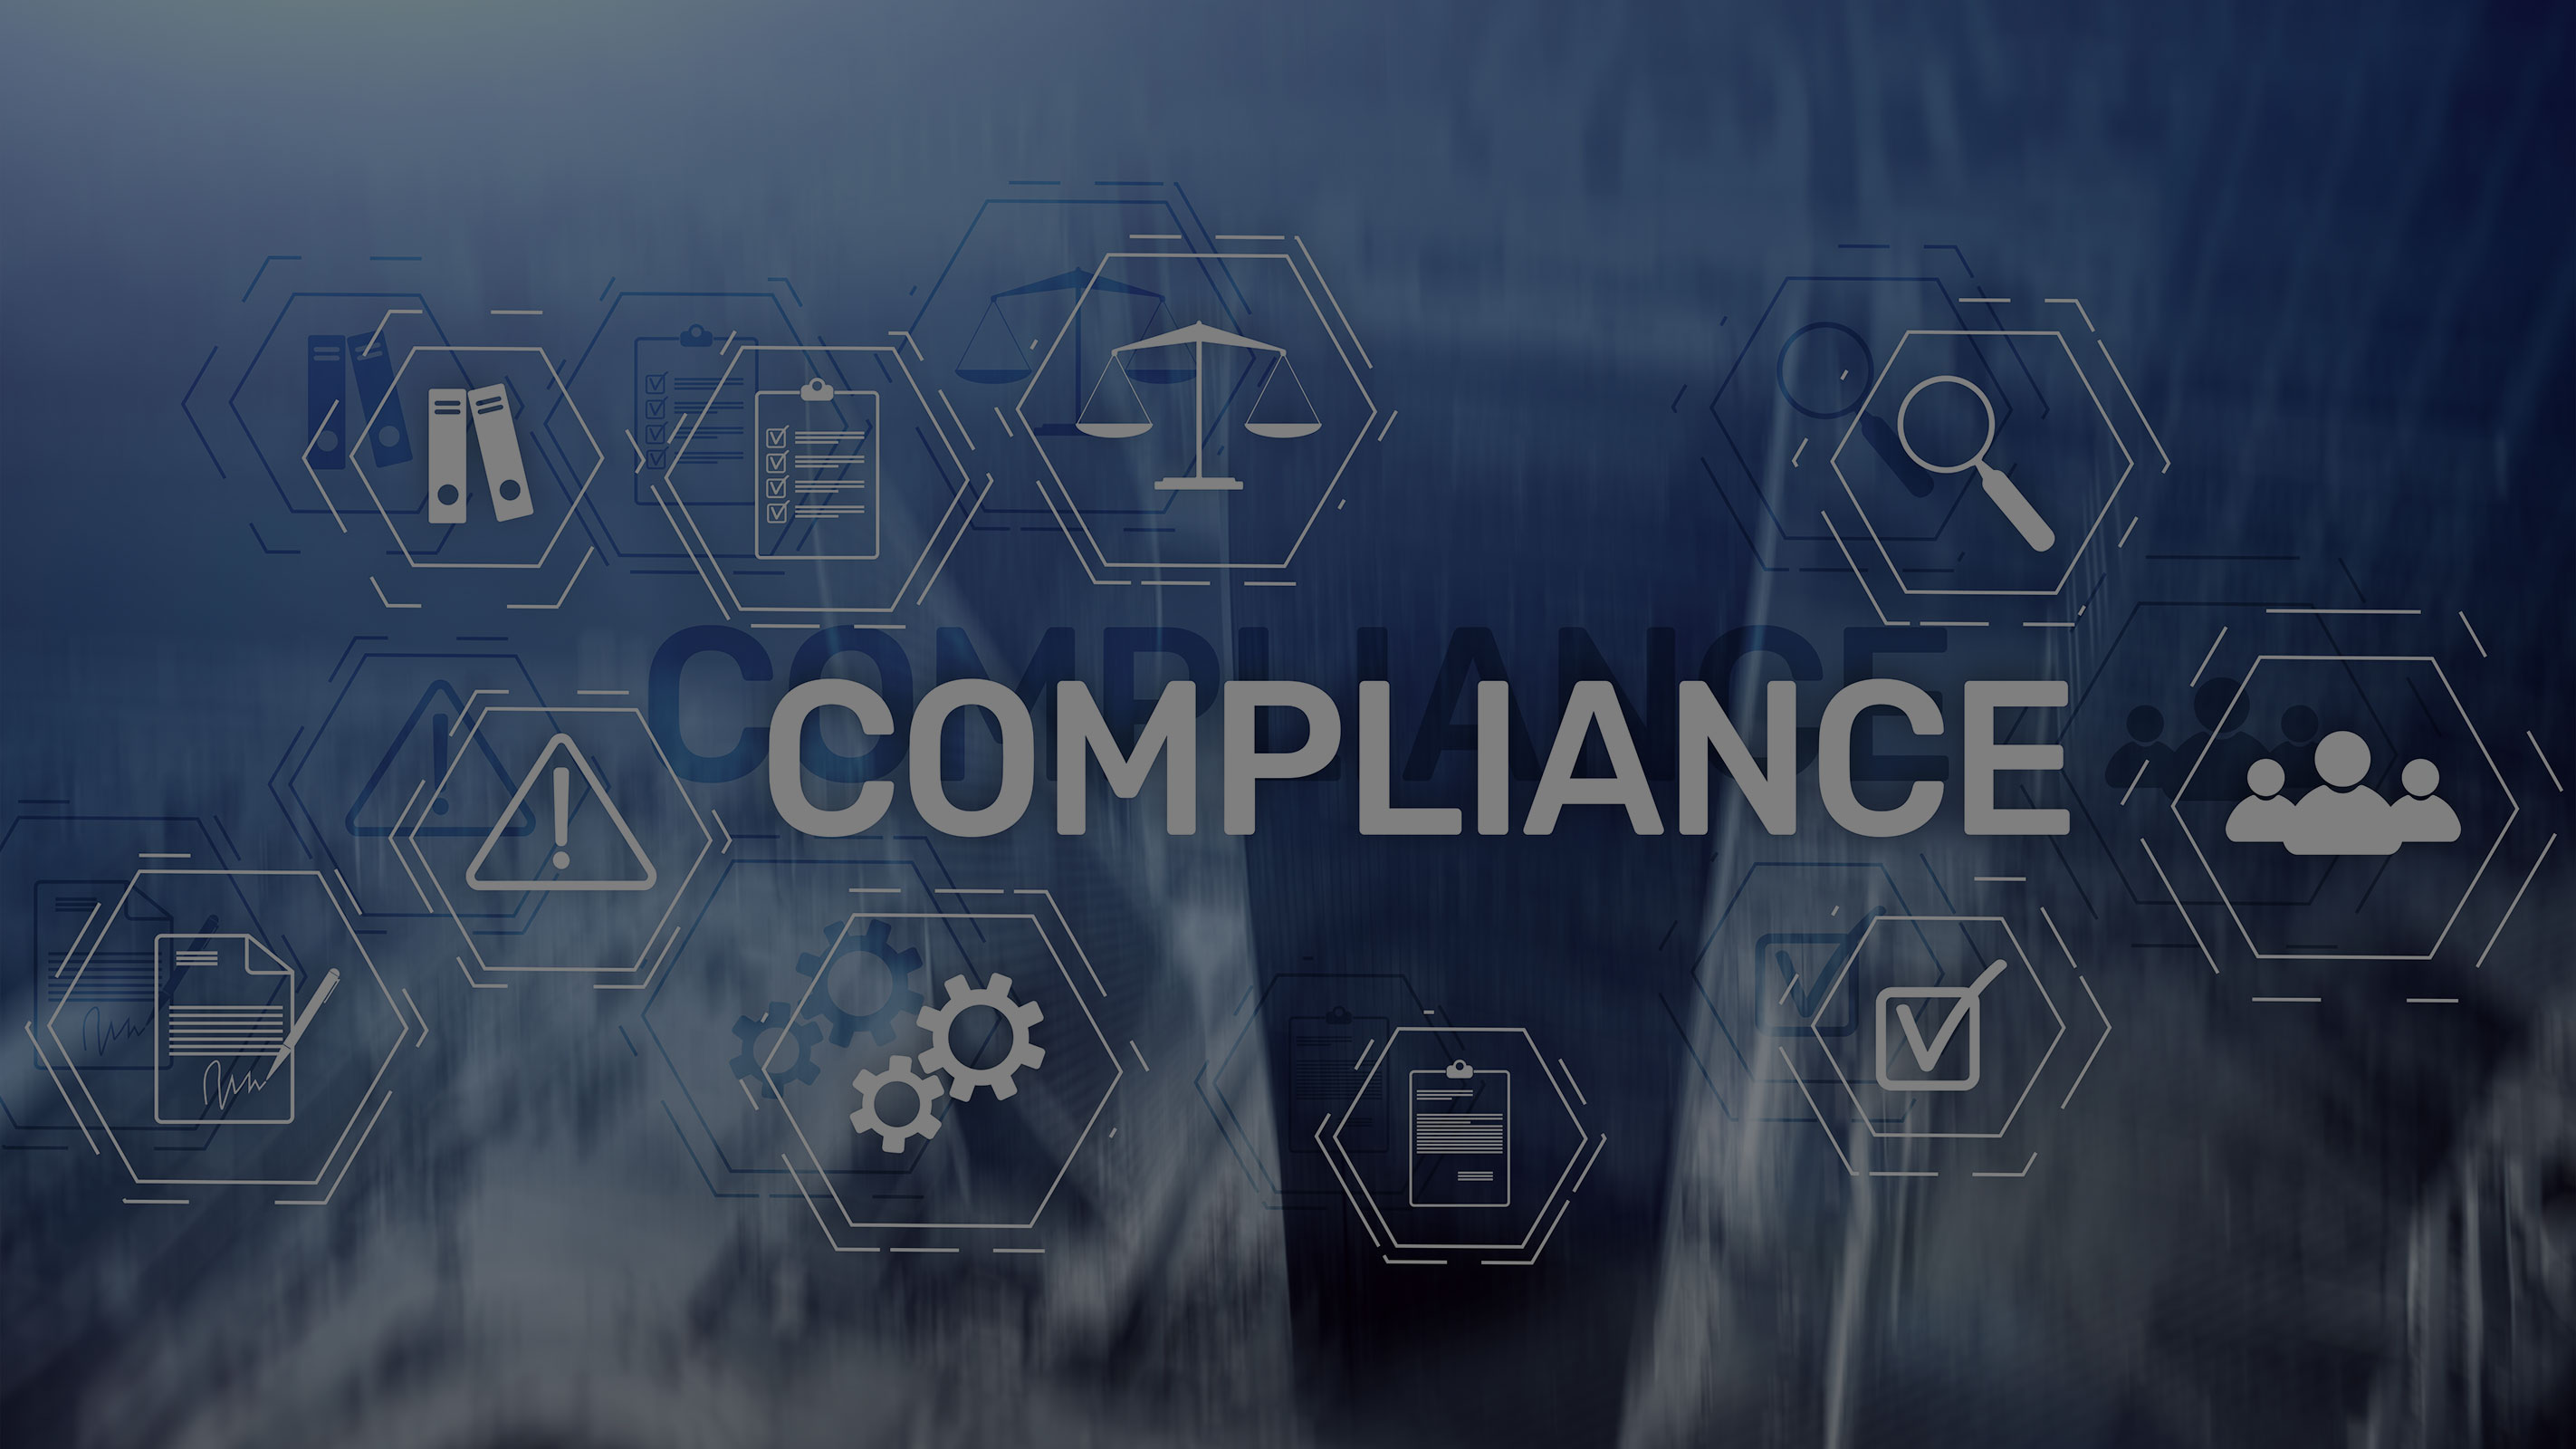 Diligex Promotes Compliance as a Benefit